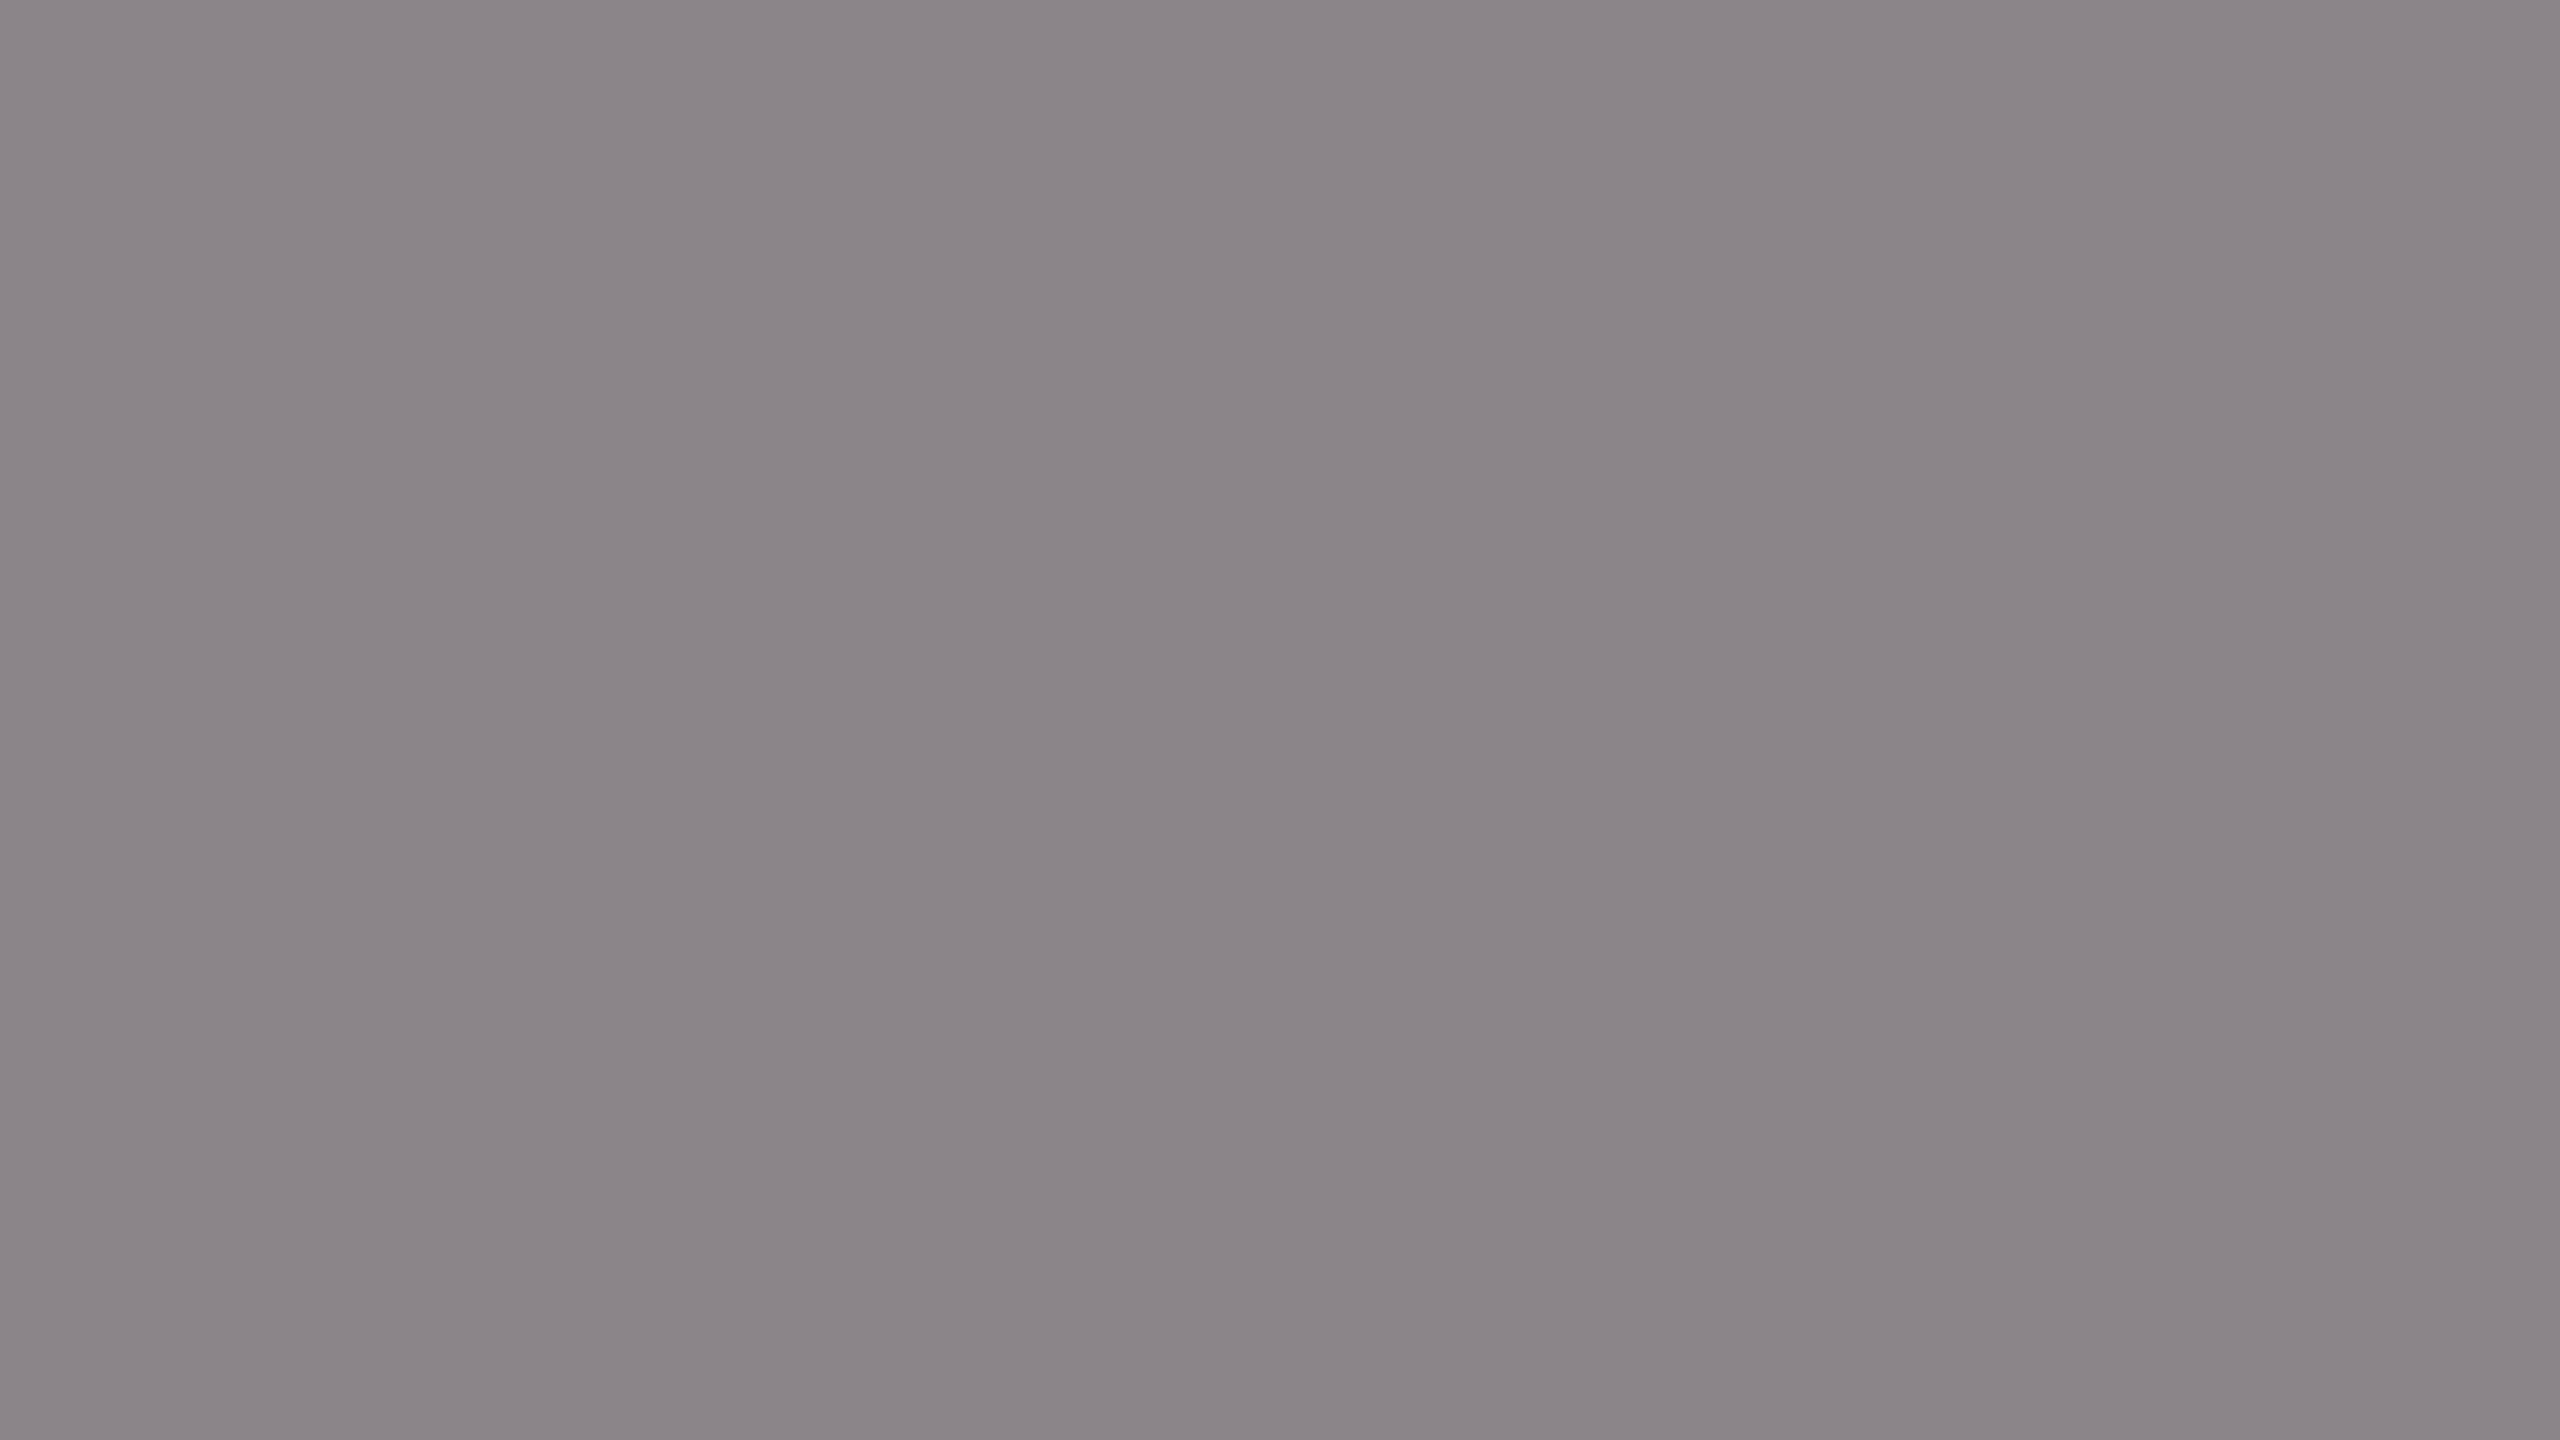 2560x1440 Taupe Gray Solid Color Background